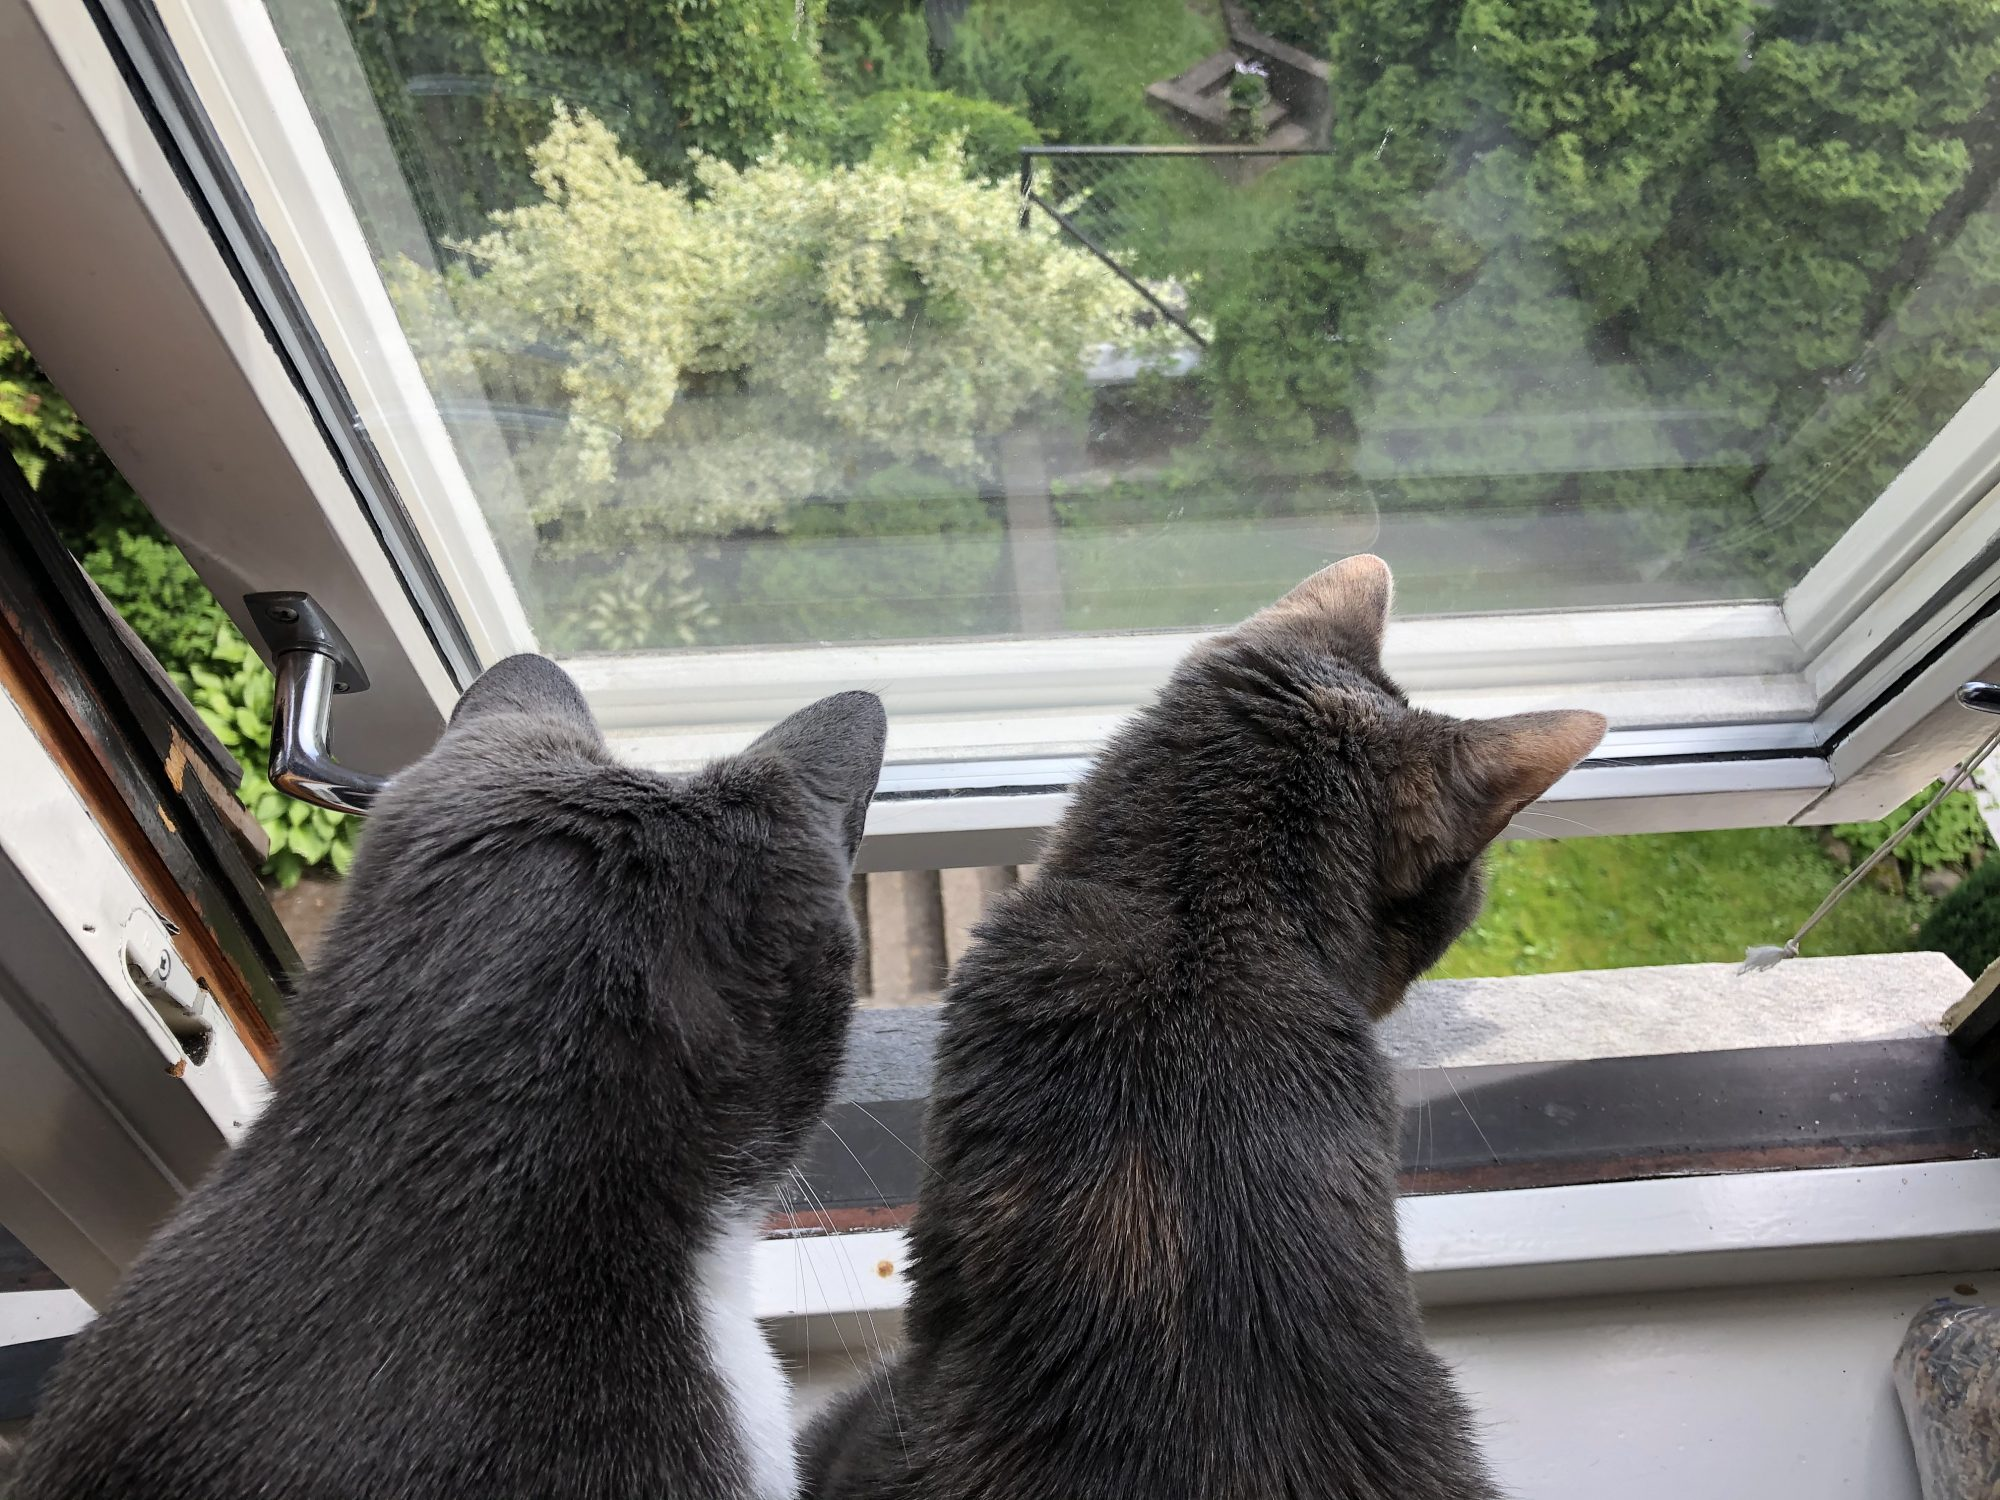 A photo of Matt's two cats sitting on the window ledge, looking out of the window which is slightly open.